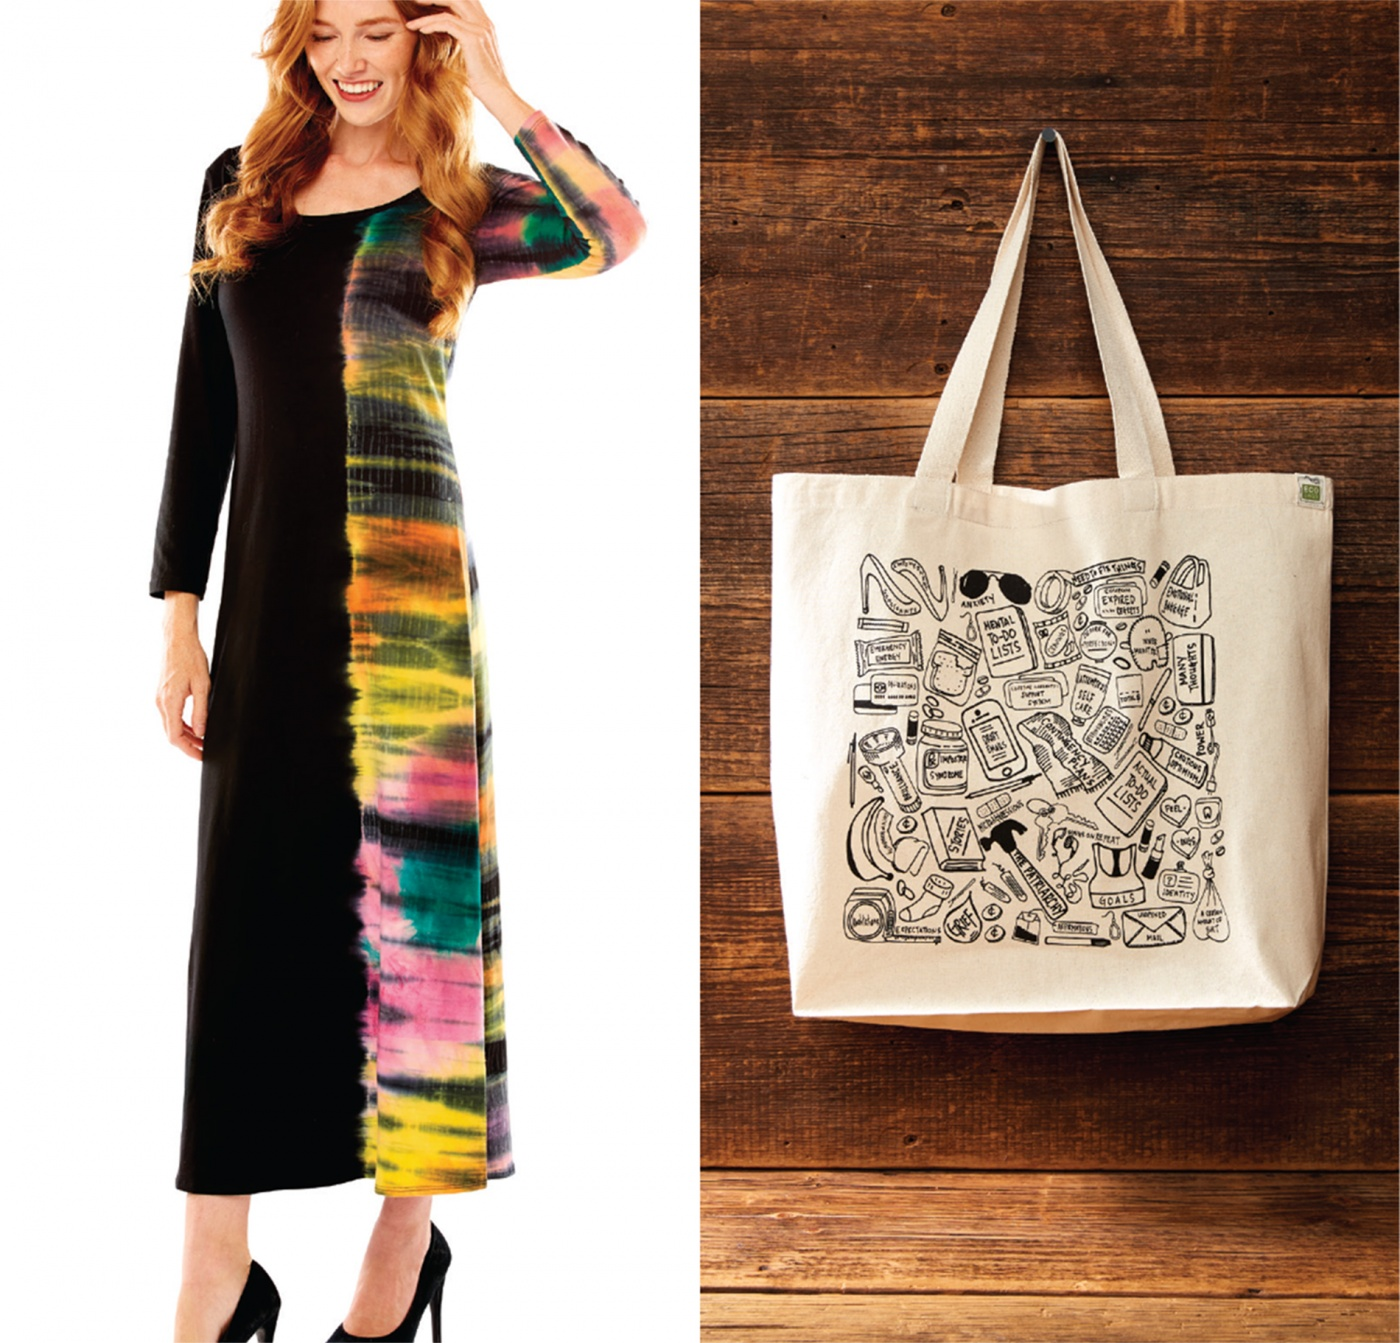 tie dye dress and tote